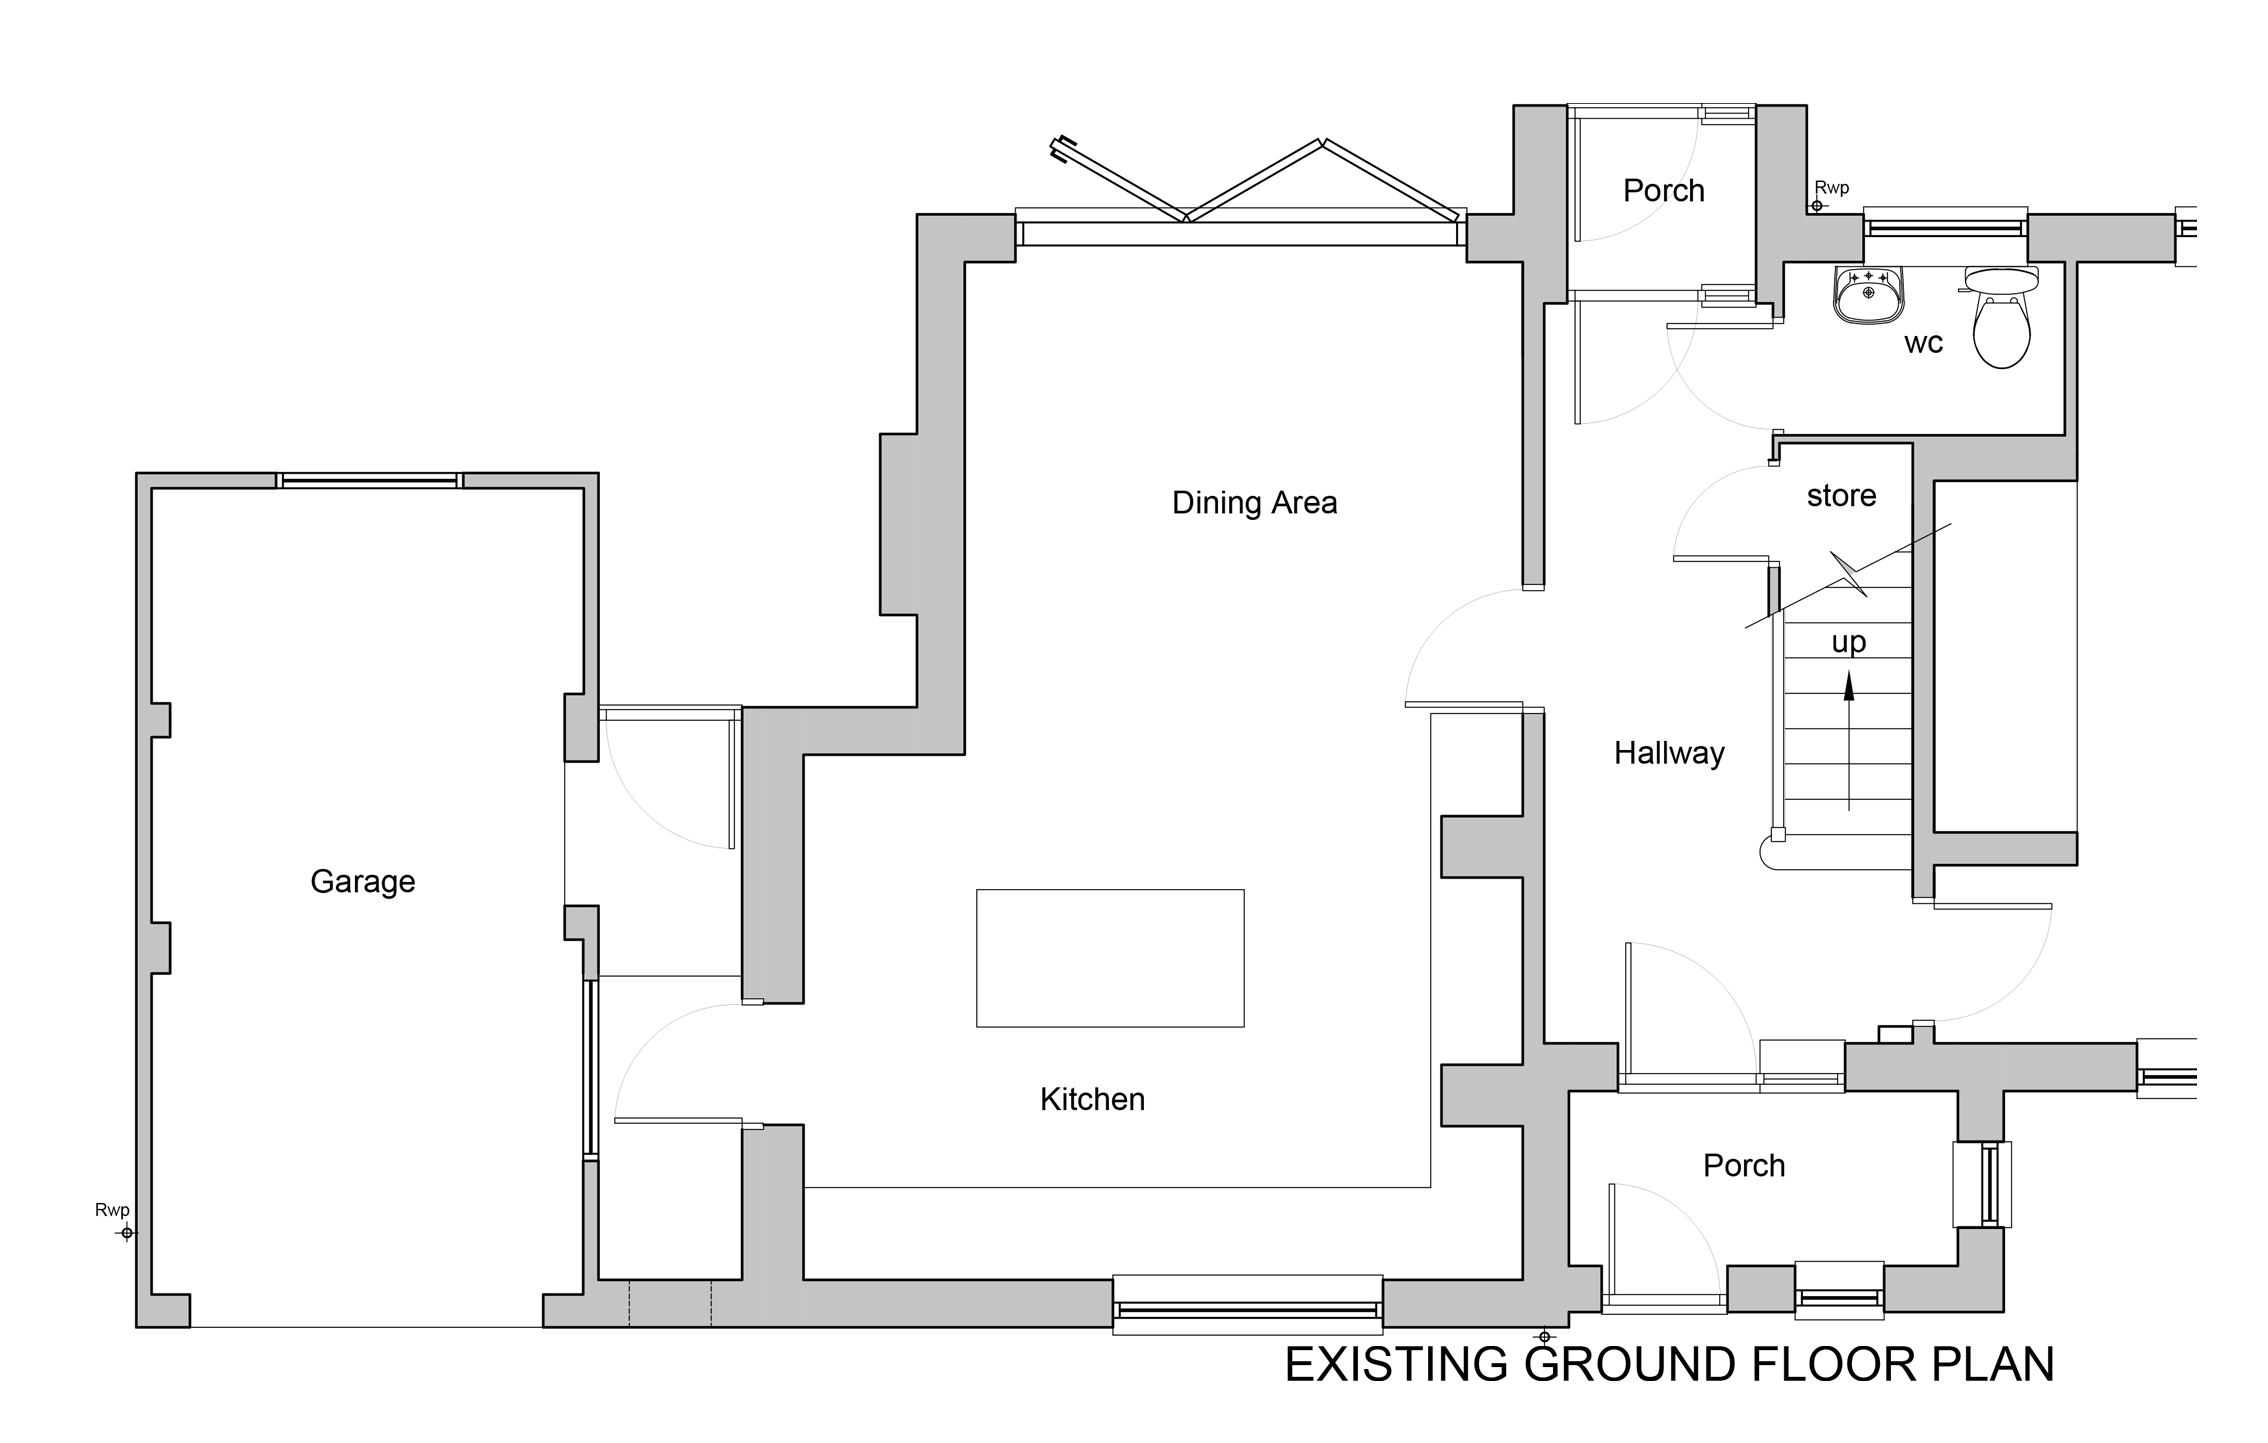 Ground Floor Existing